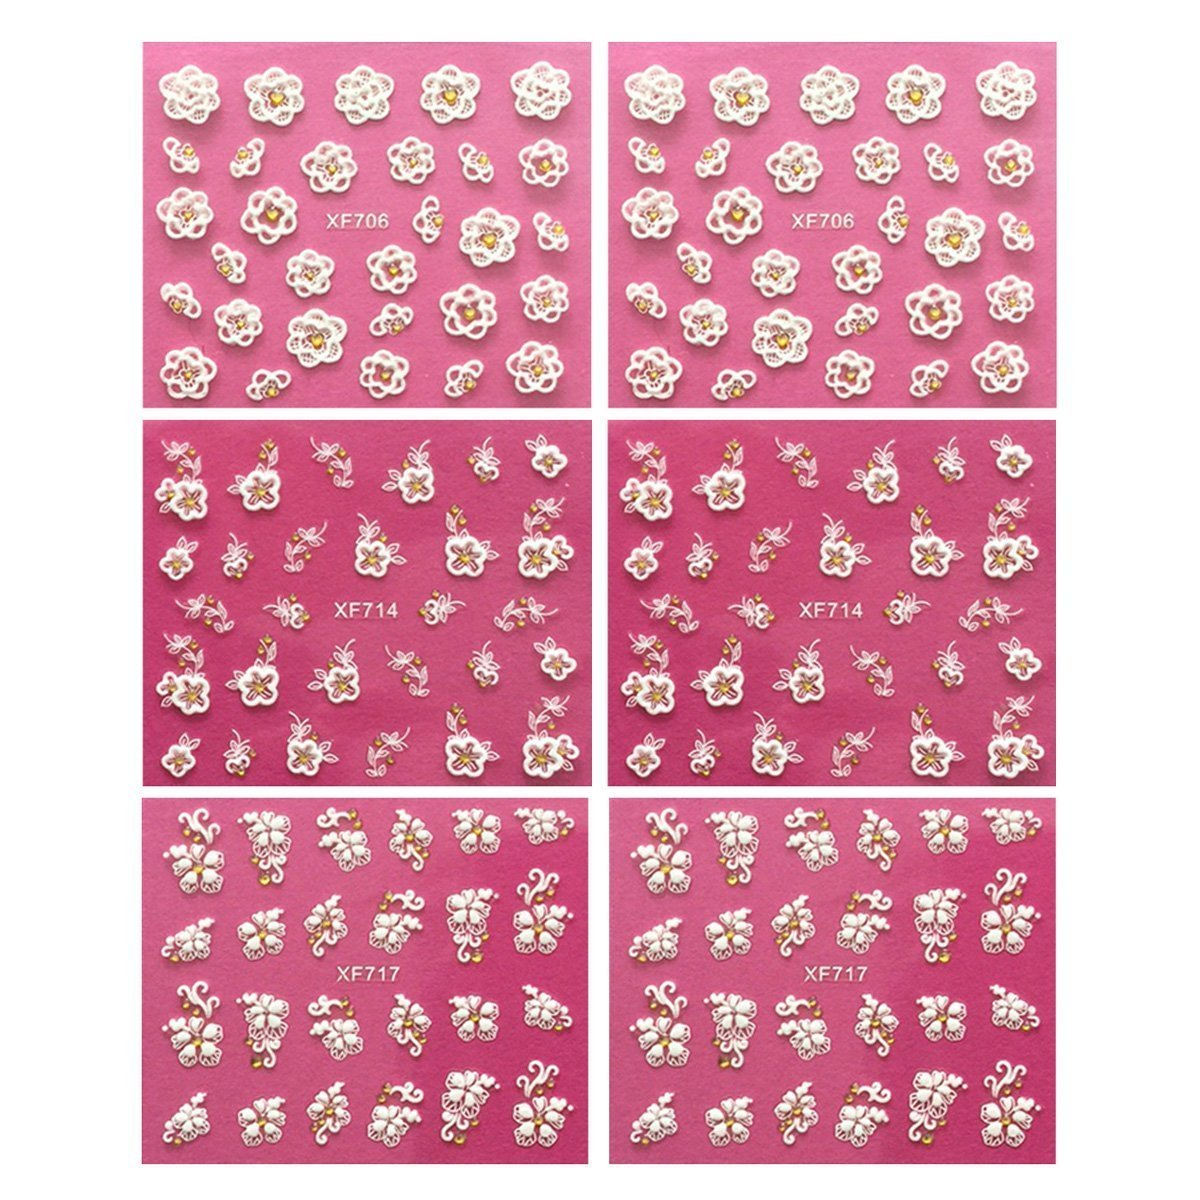 Wrapables Flowers with Gold Embellishment Nail Art Self-Adhesive Stickers Nail Decals, Set of 6